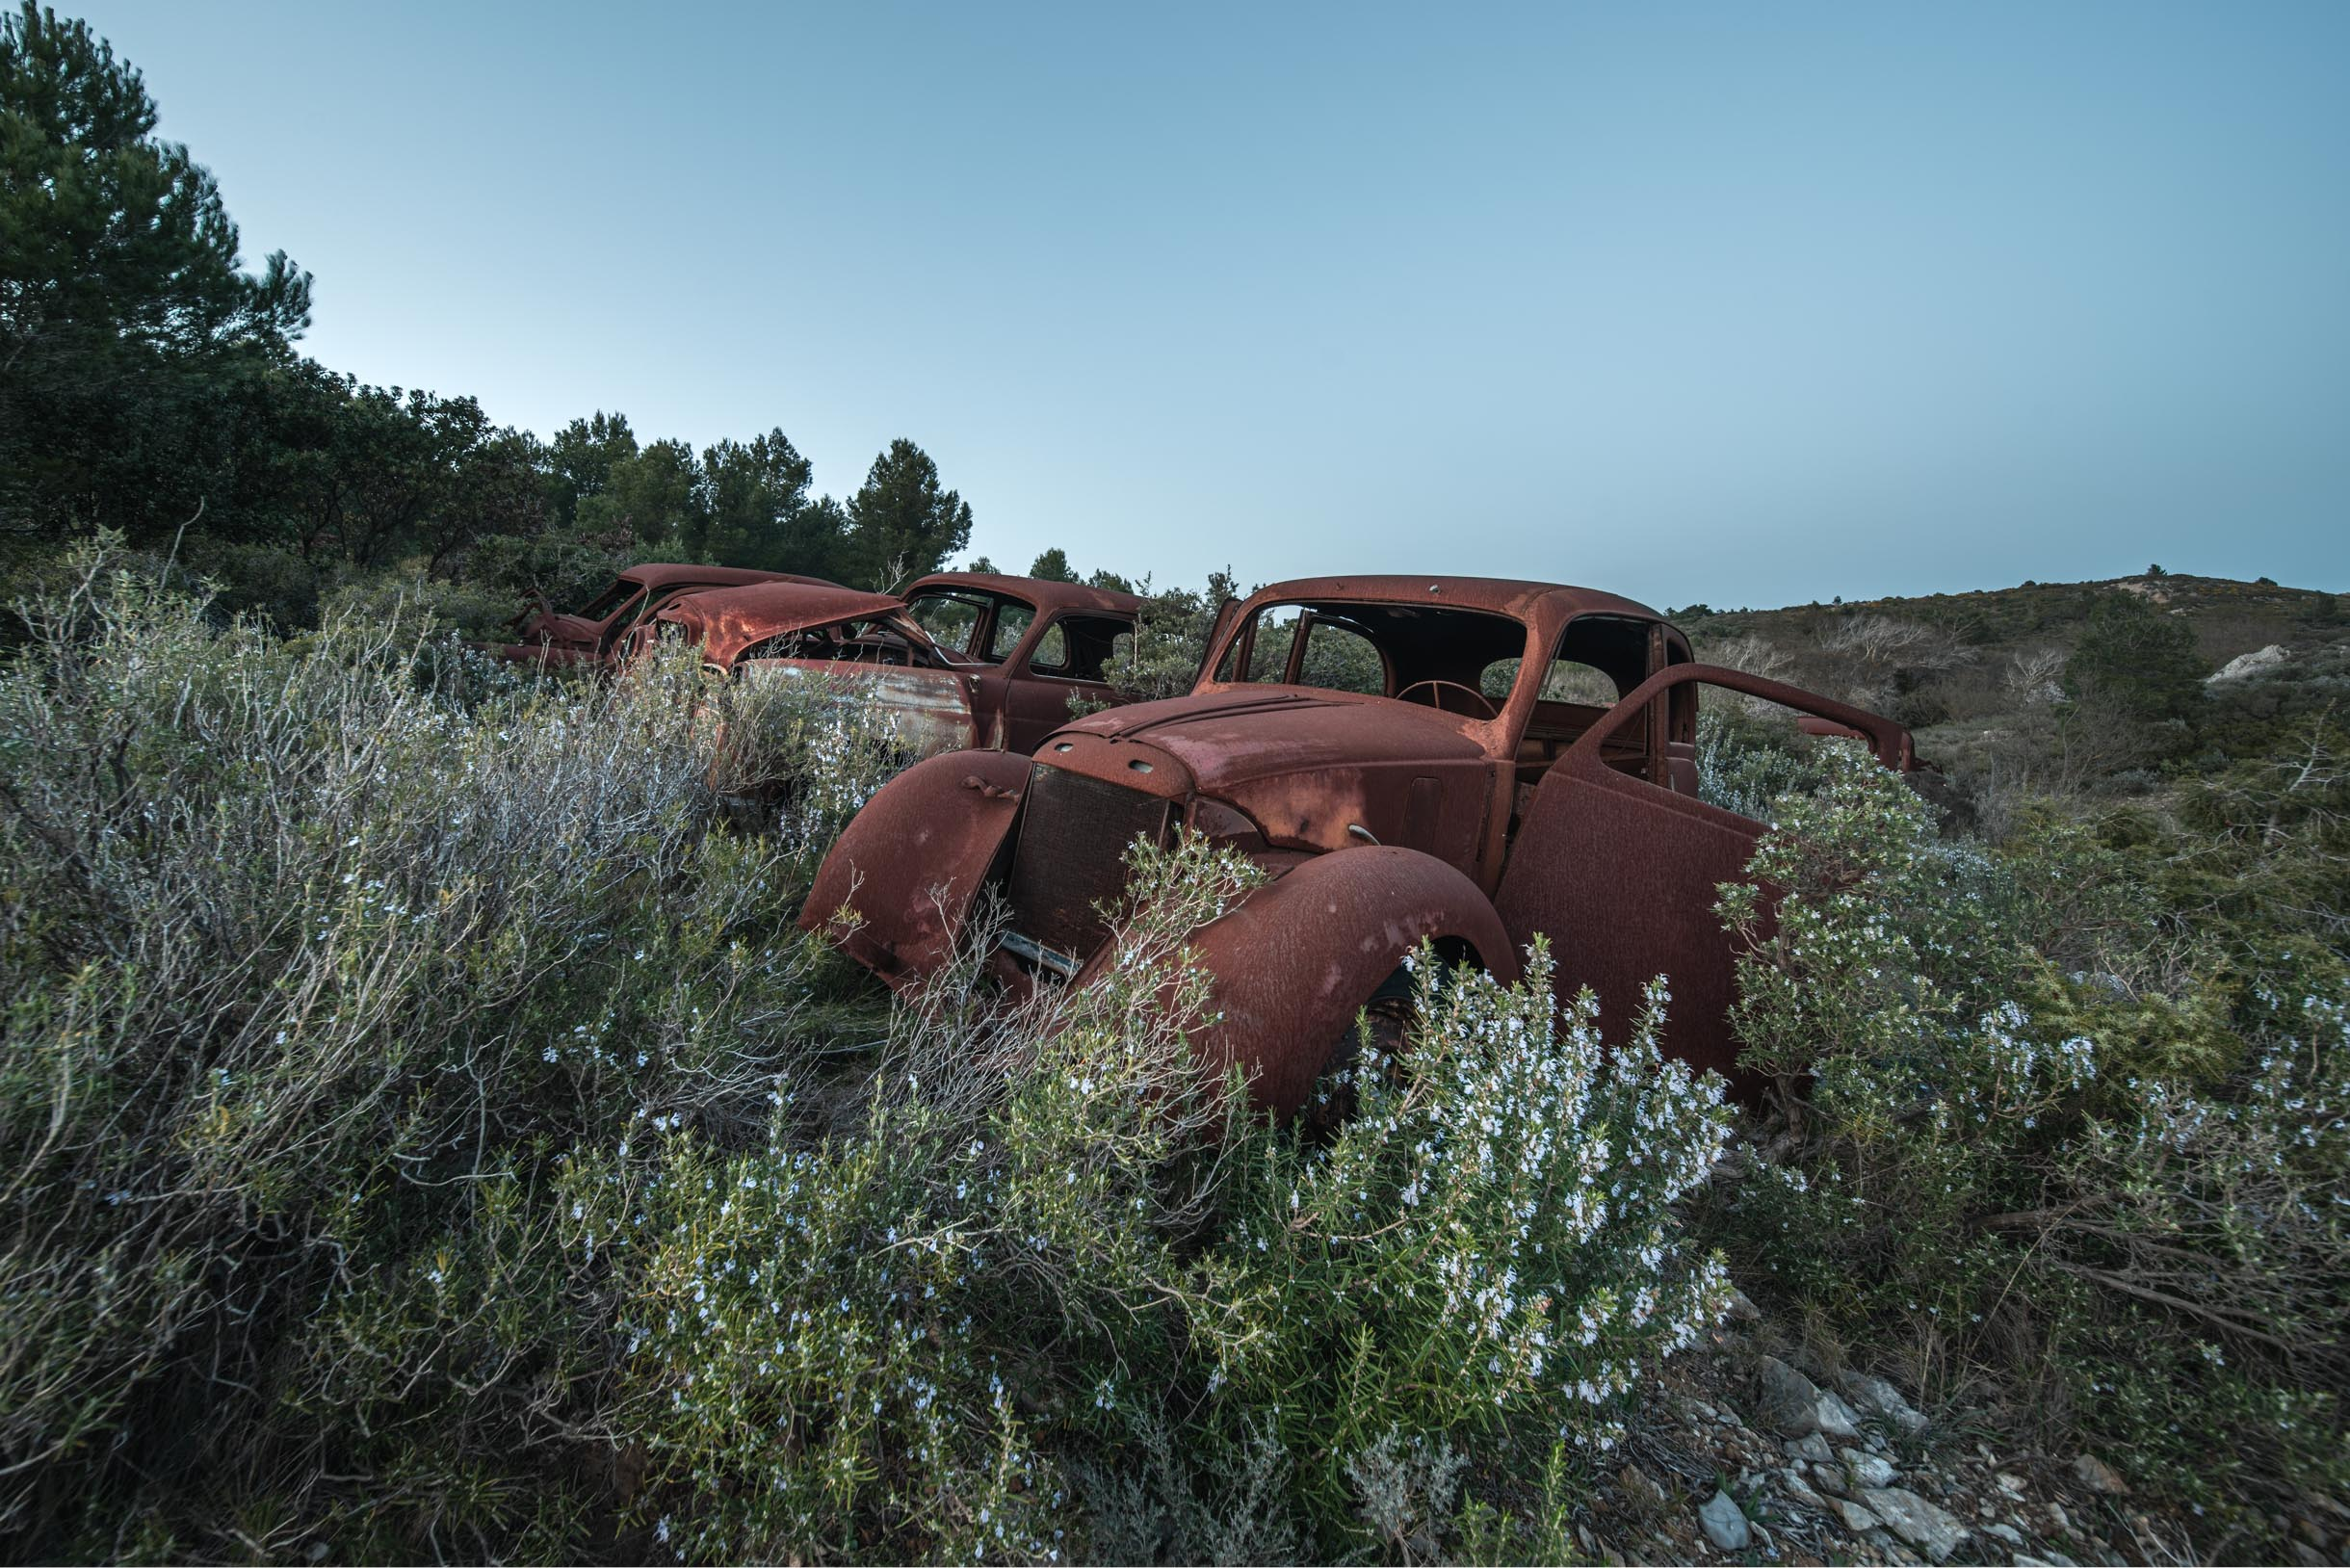 Lost Rusty Cars